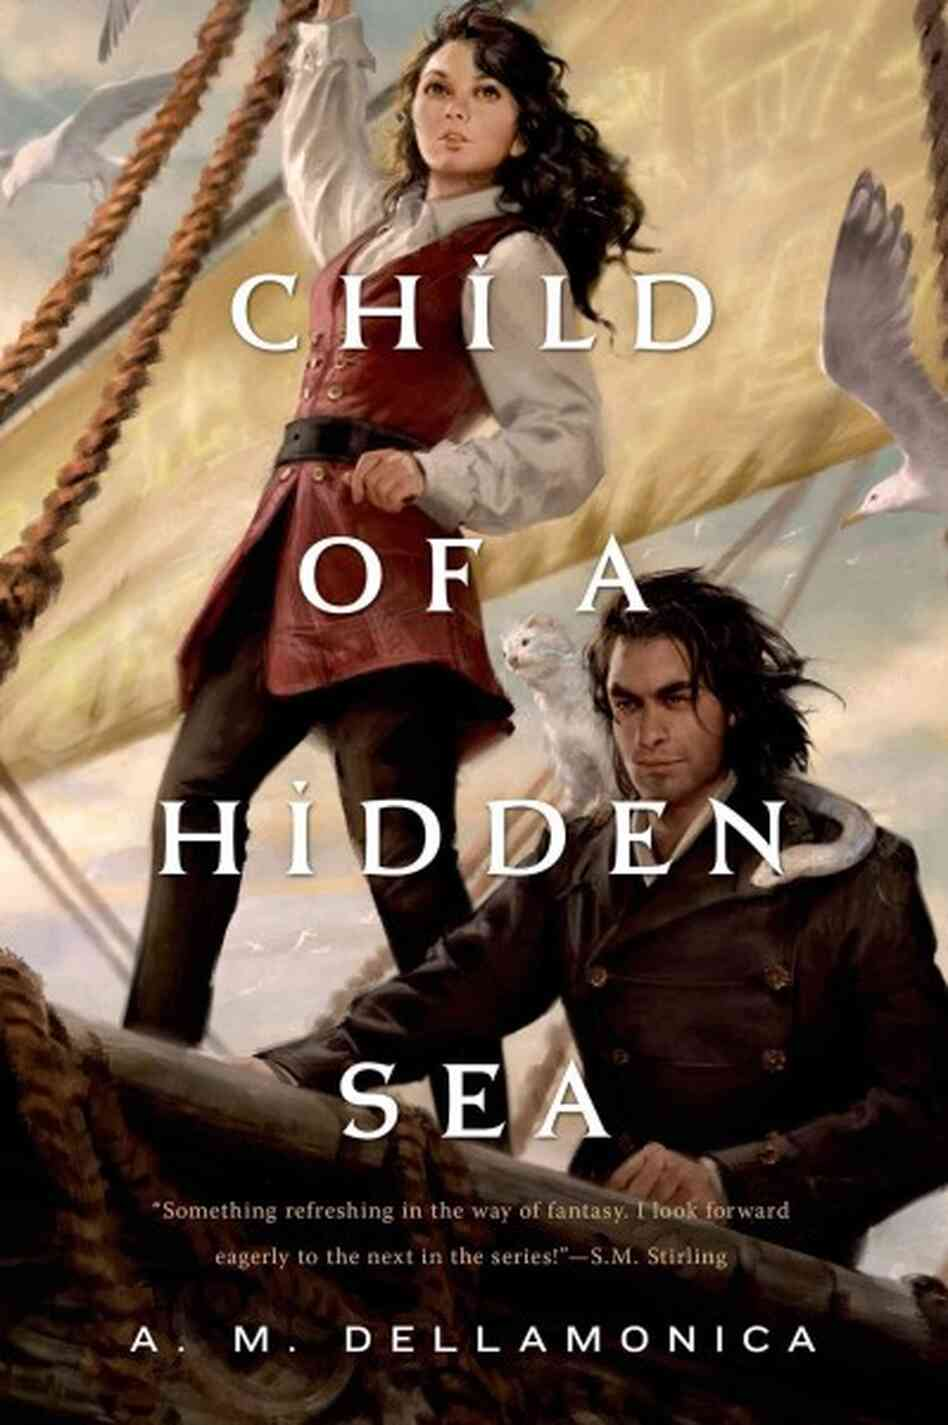 Alyx Dellamonica: Five Things I Learned Writing Child Of A Hidden Sea